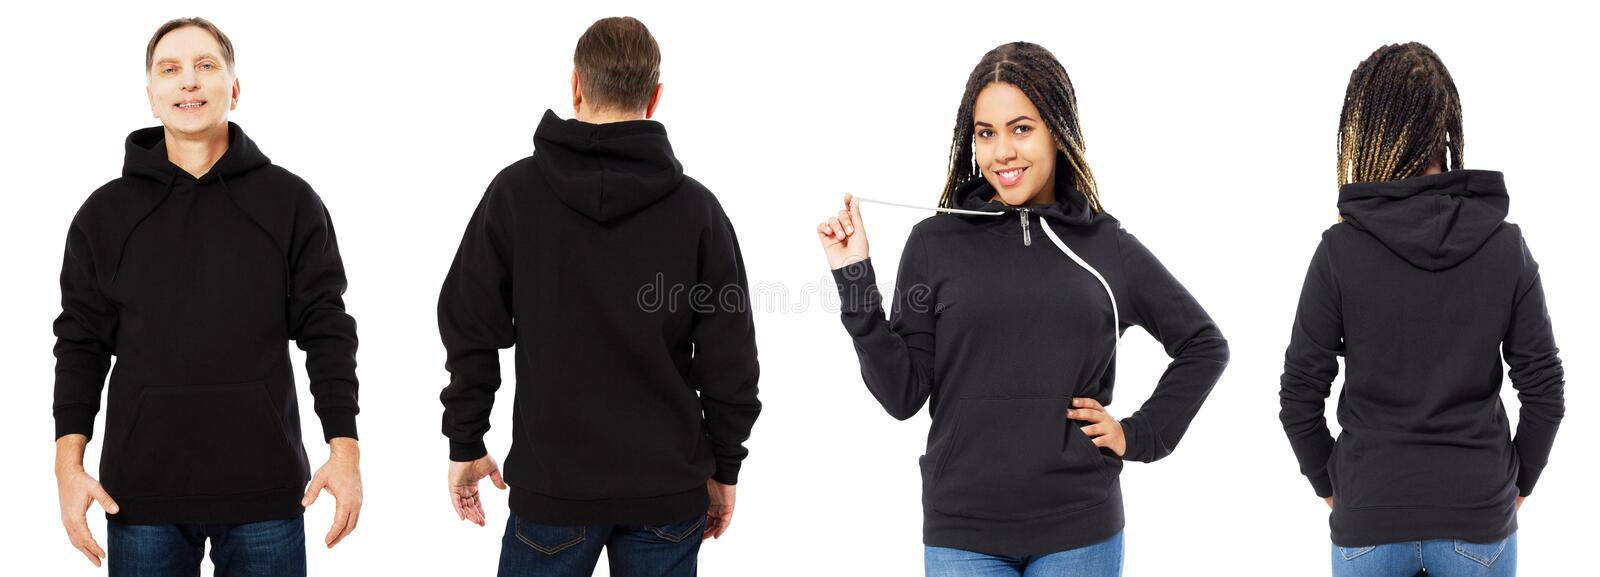 Afro american woman in hoodie mockup, man in empty hood front and back view isolated over white, hoodie set female and male royalty free stock photography